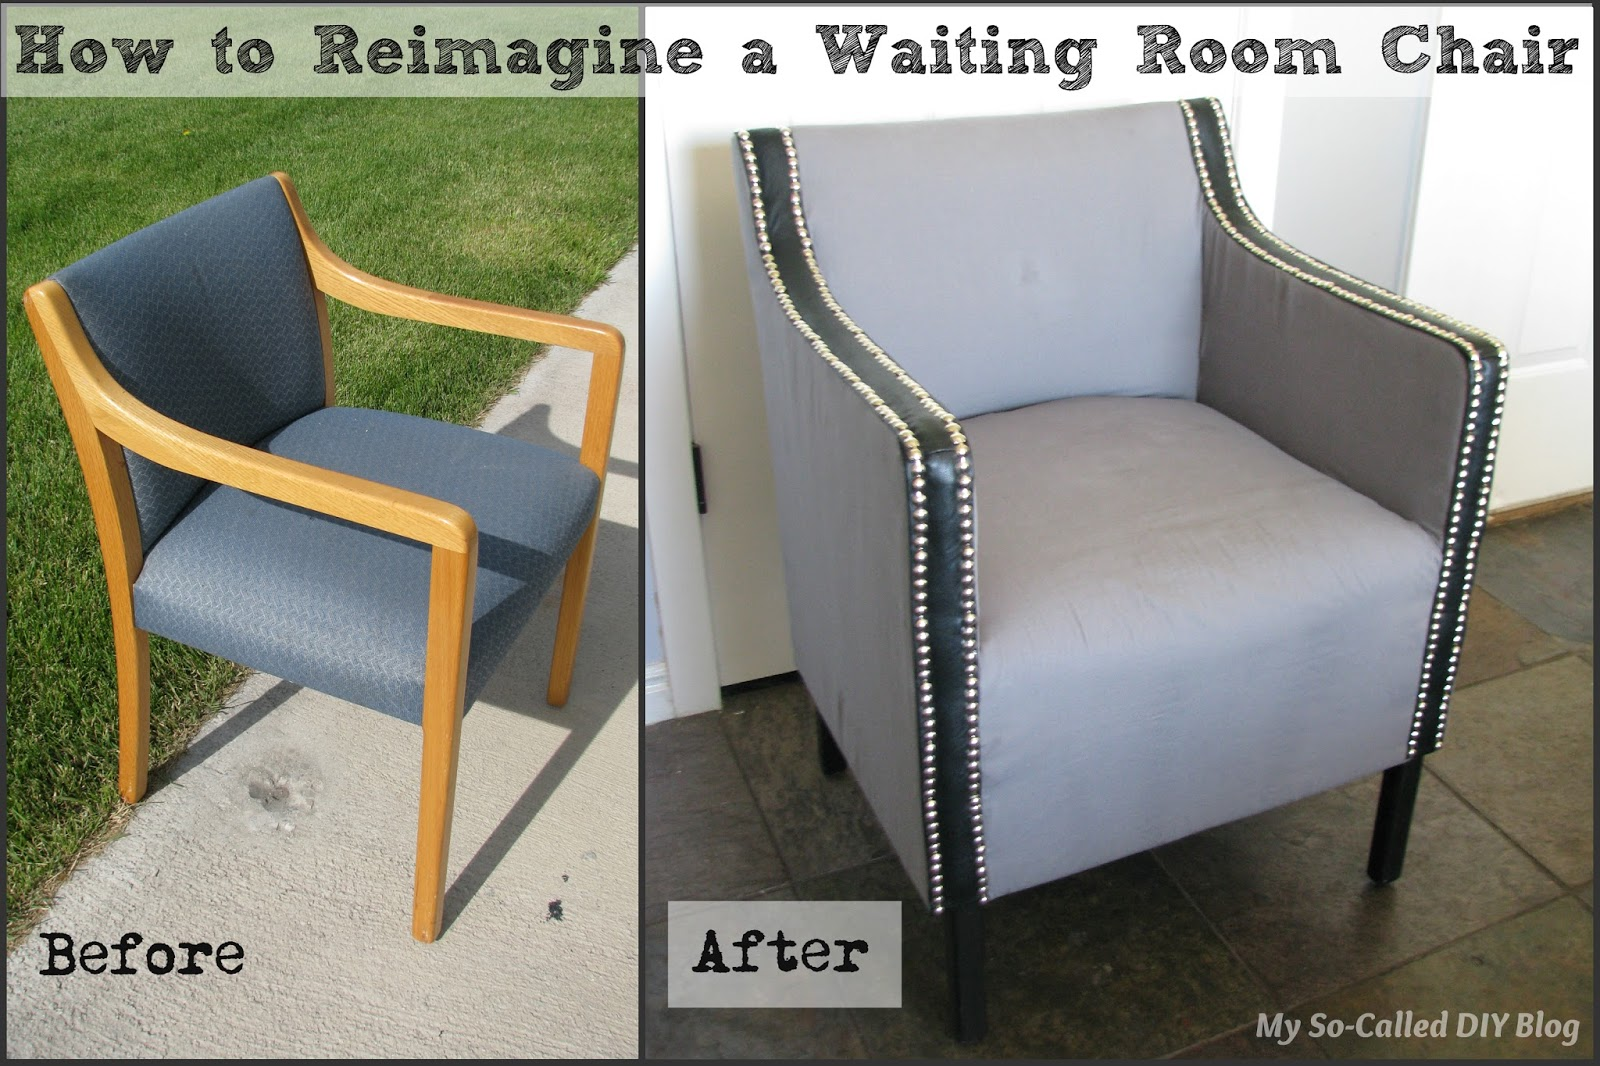 Waiting Chairs My So Called Diy Blog How To Reimagine A Waiting Room Chair